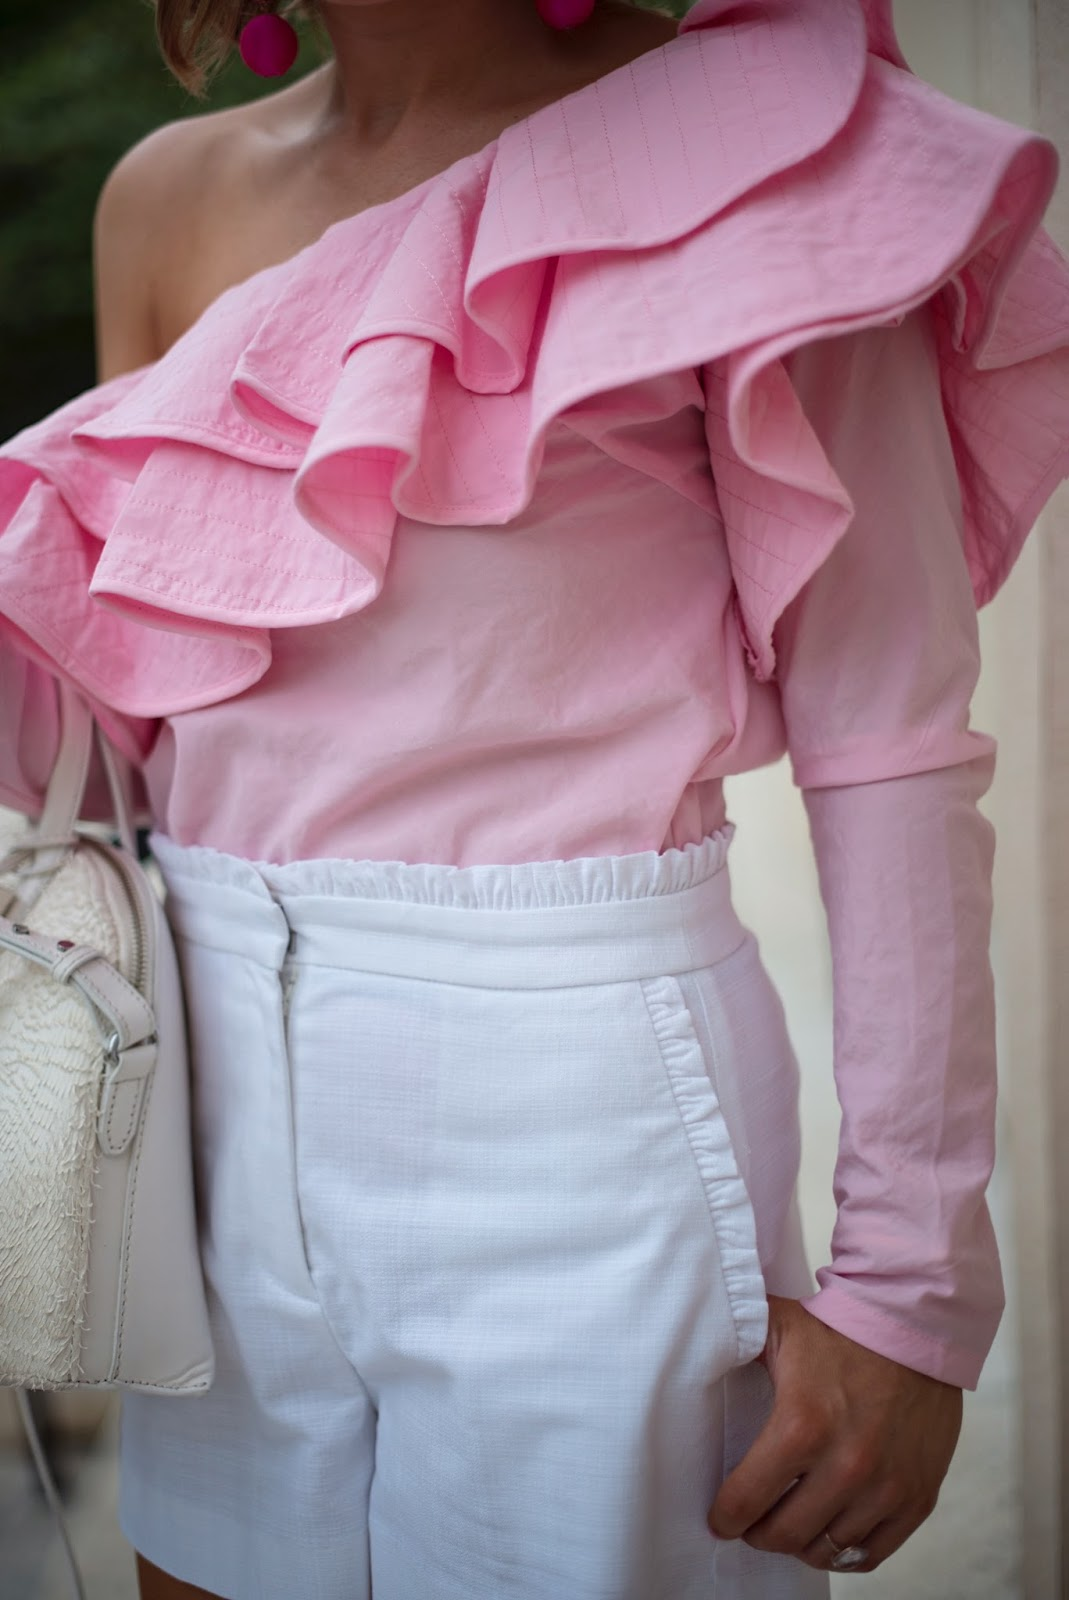 Pink Ruffled Top & J.Crew Ruffled Shorts - Click through to see more on Something Delightful Blog!